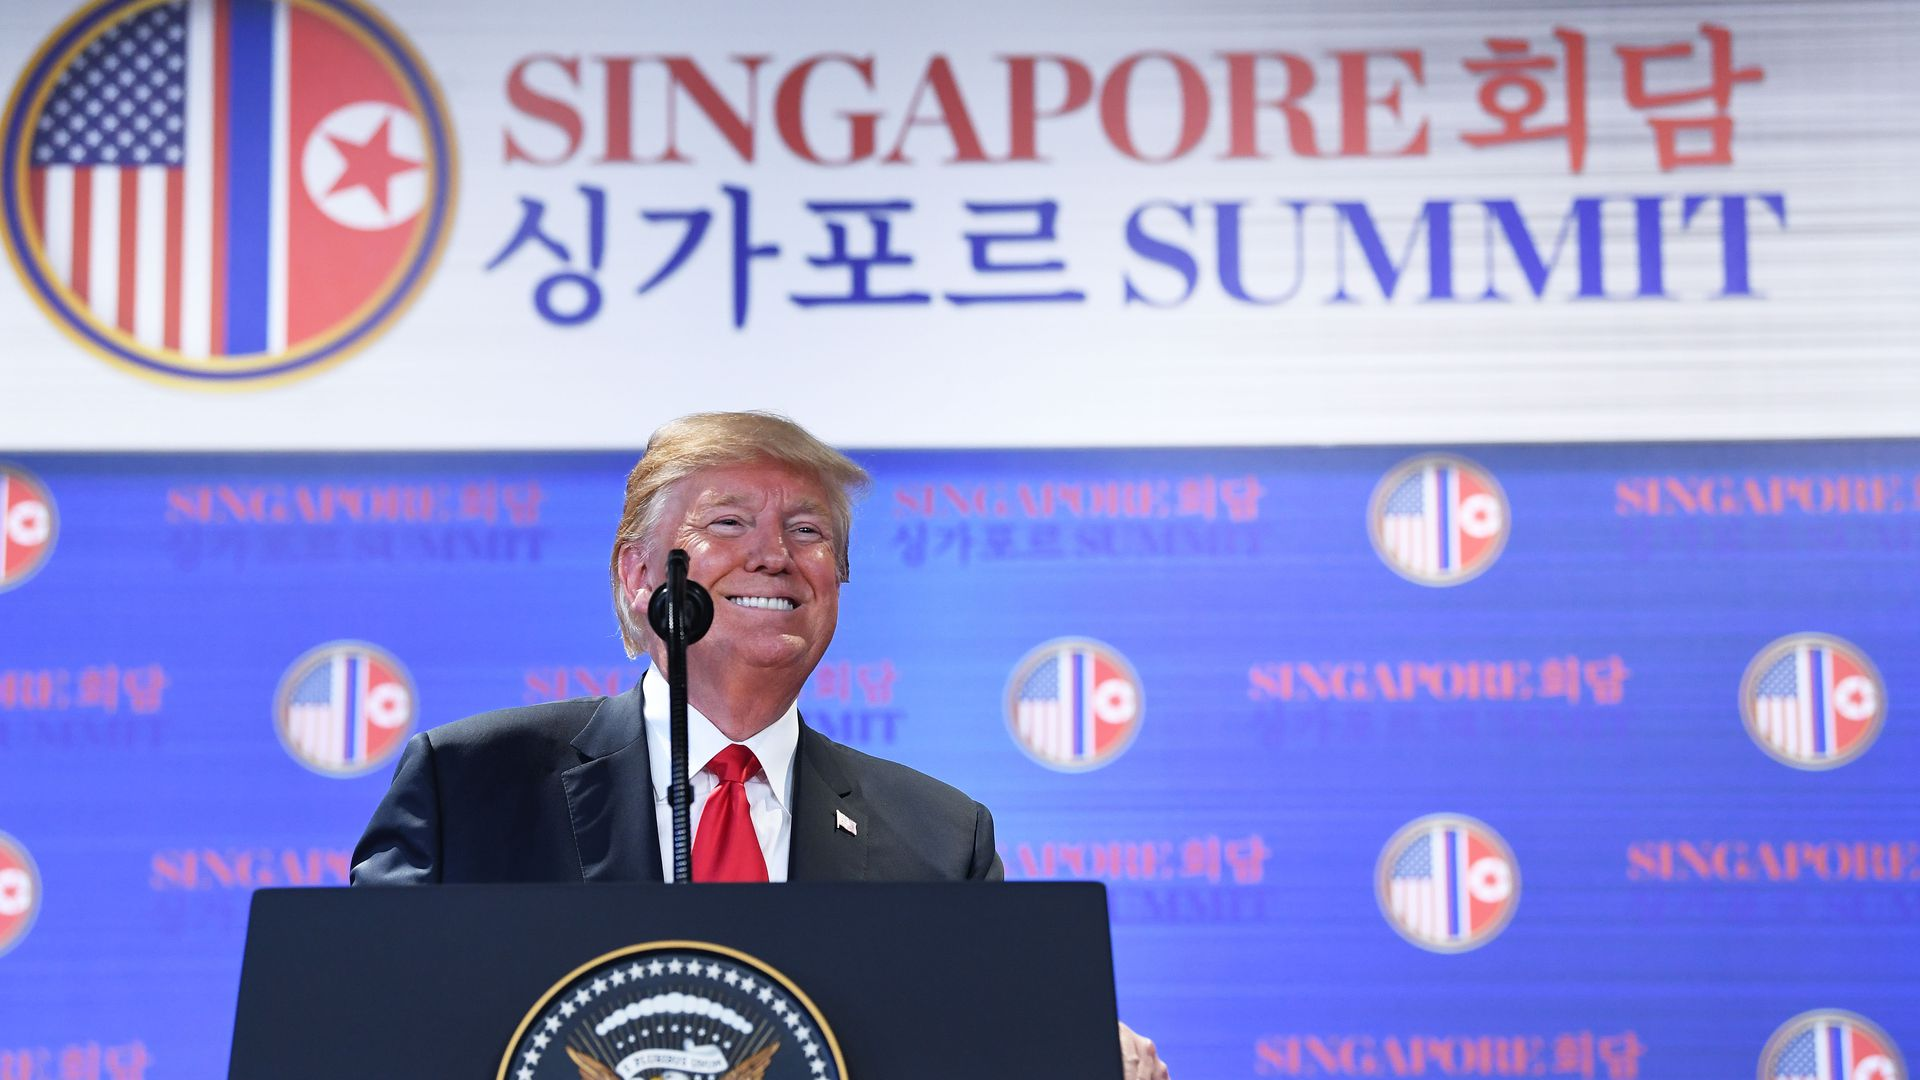 Donald Trump at lectern at Singapore summit